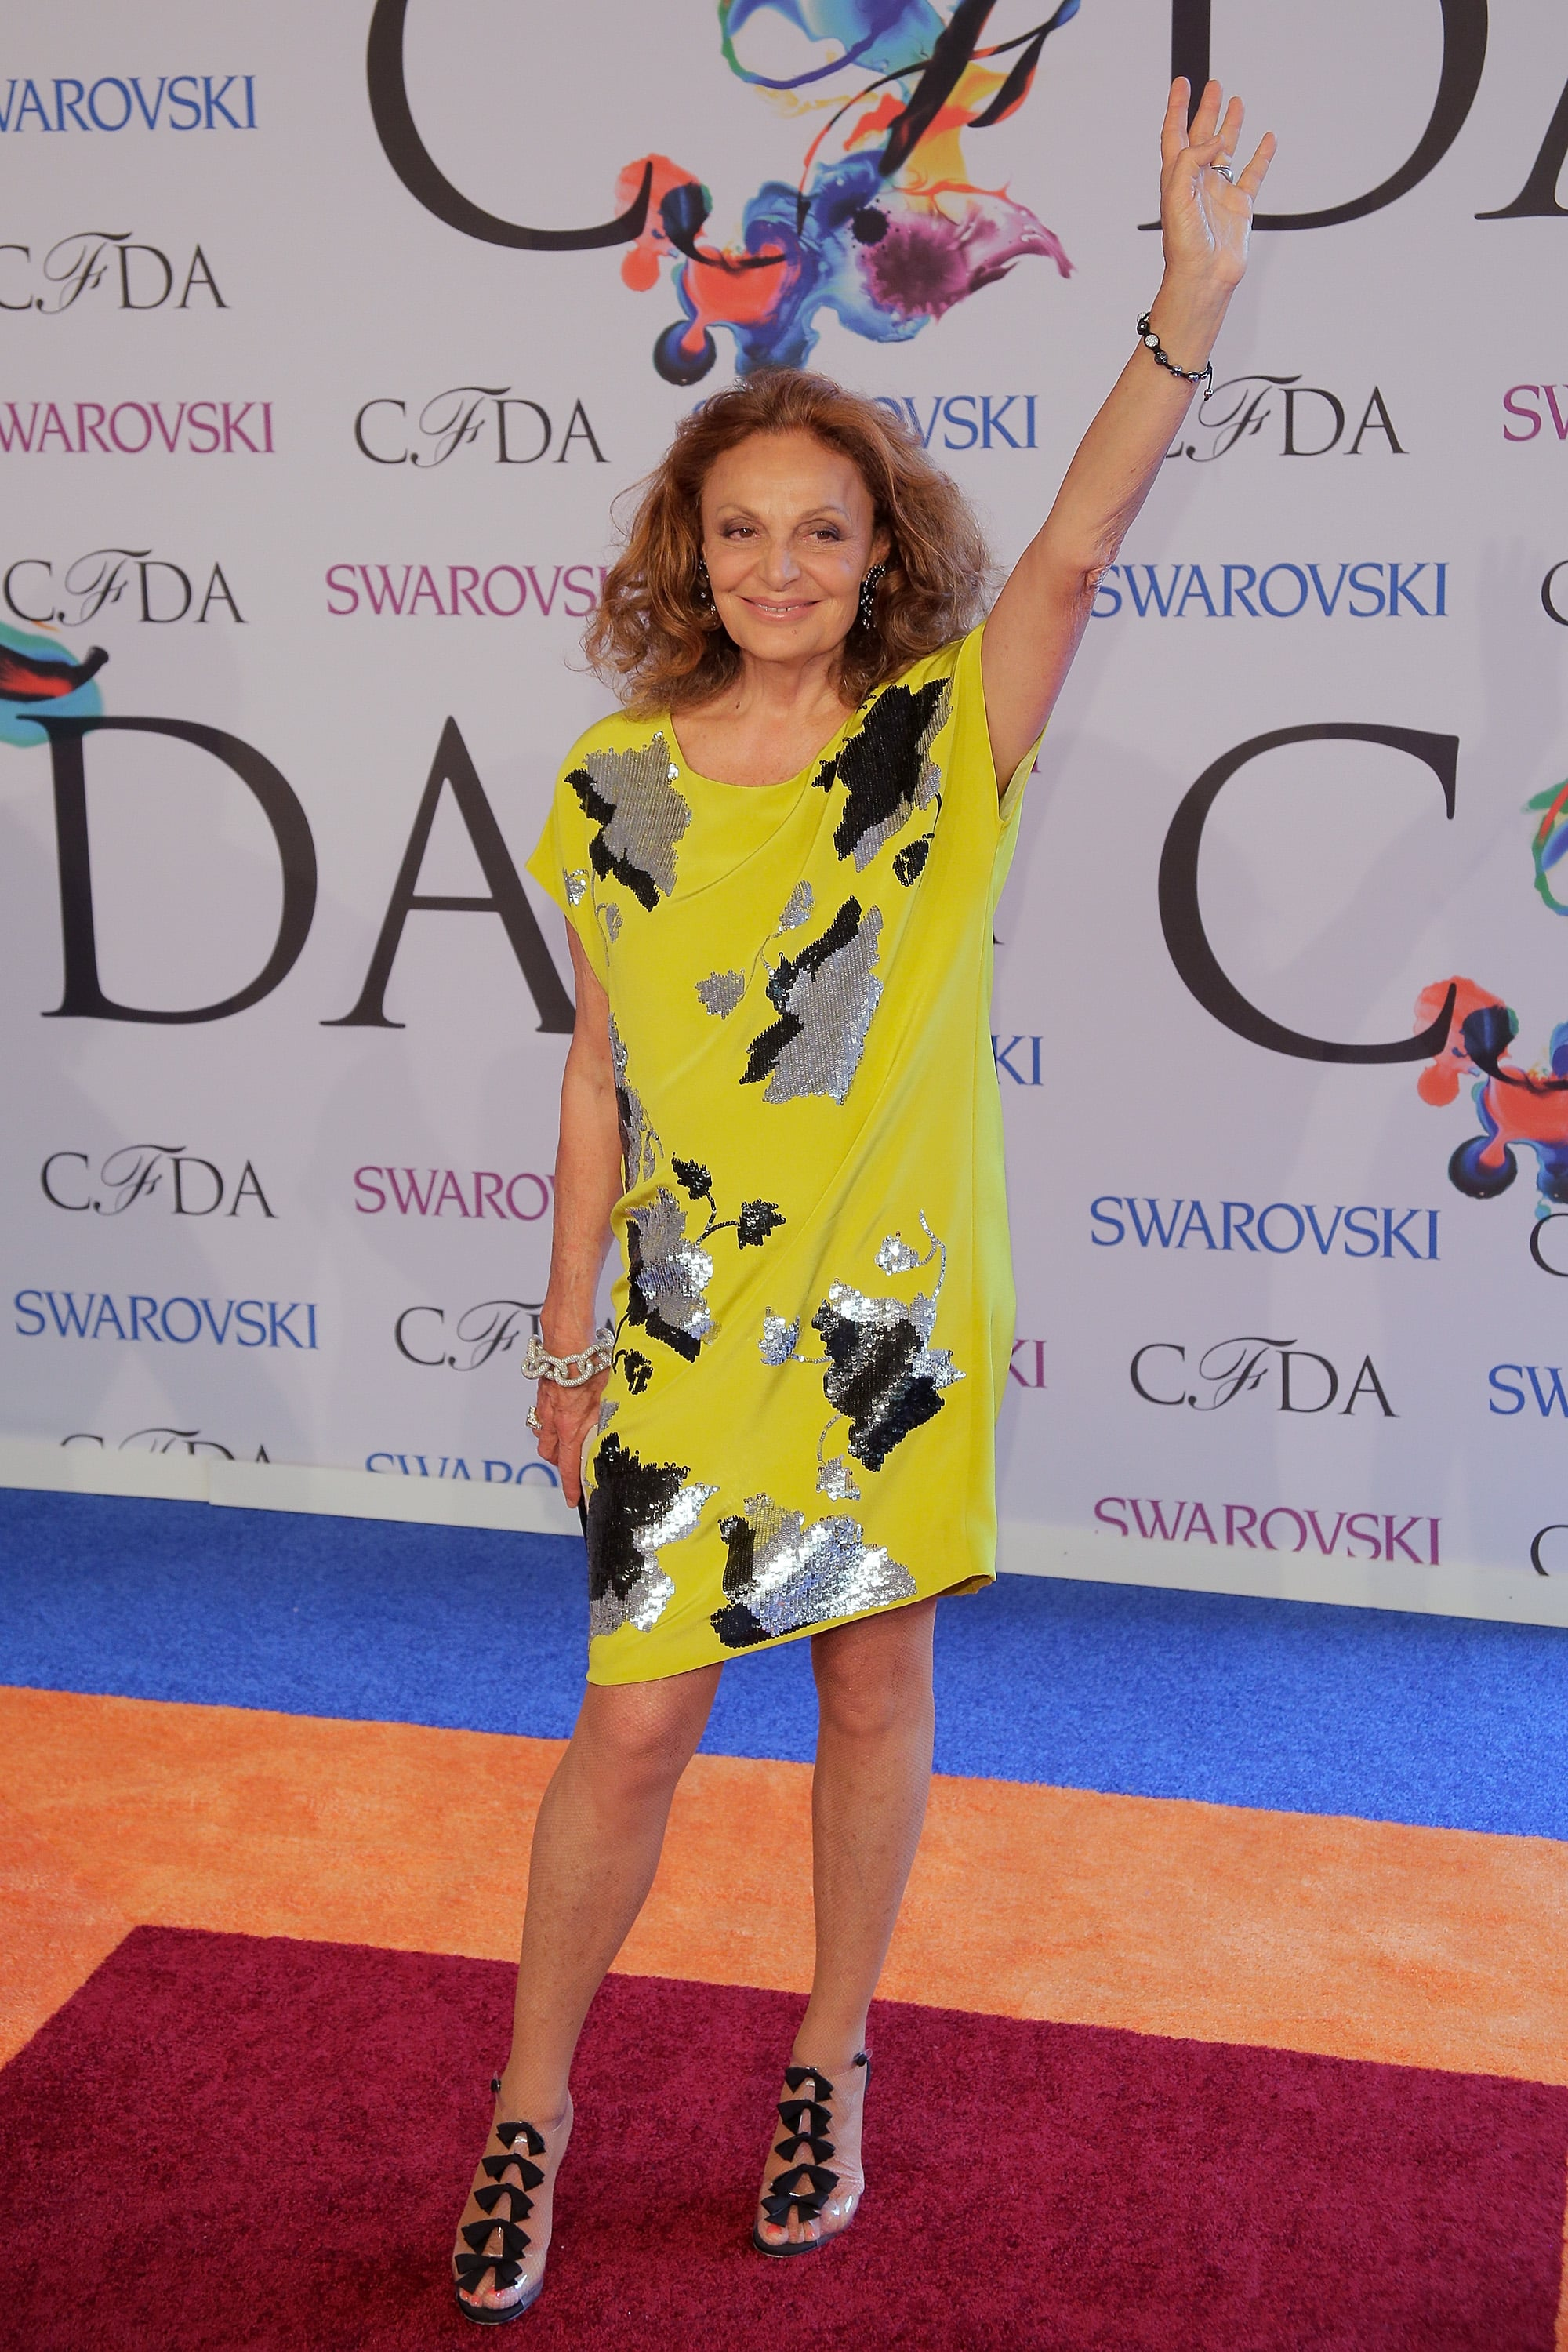 It was recently announced that Diane von Furstenberg will continue her roles as CFDA president through 2016. The designer plans to better oversee the management of Fashion Week — from runway shows to events — in order to maintain the foundation of the industry, which consists of the press, retailers, and, of course, designers.